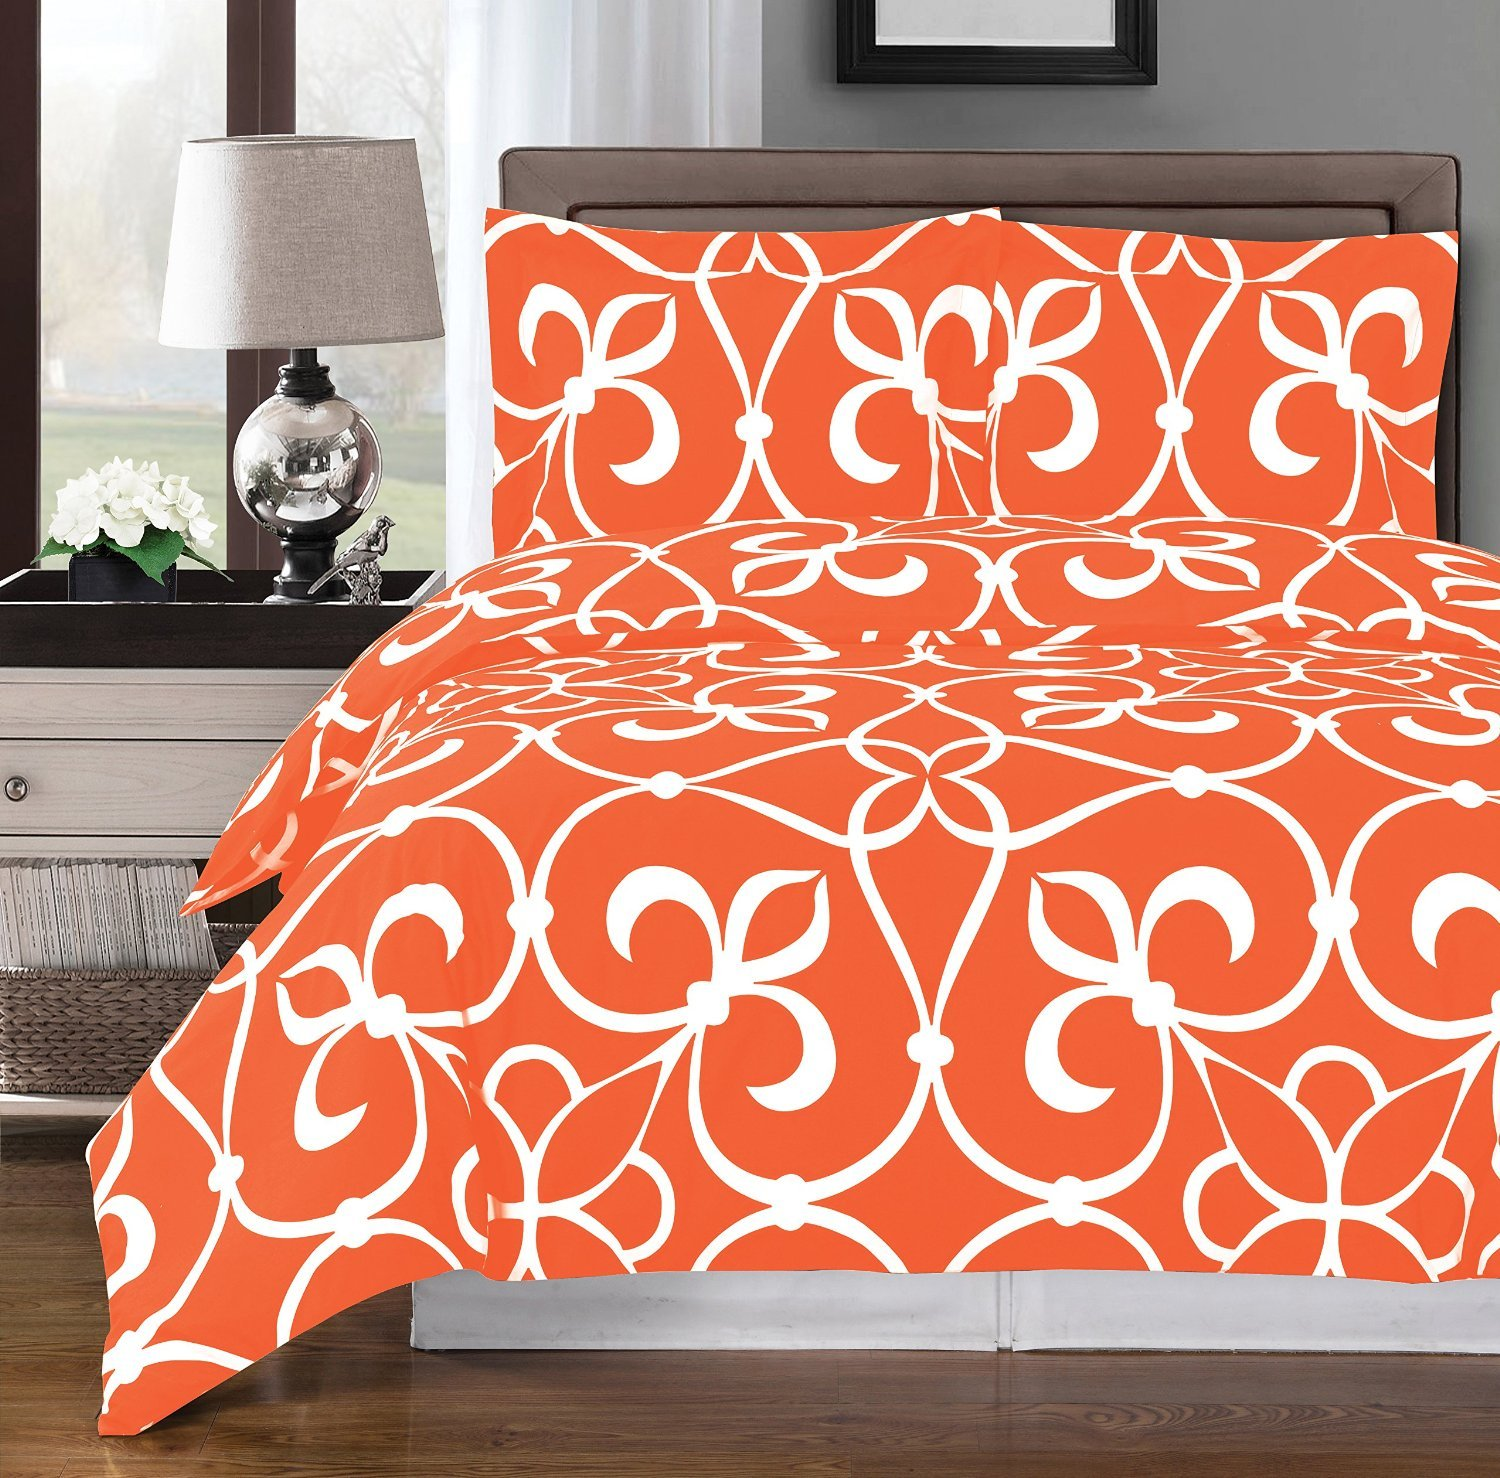 Brown and orange bedding - Tangerine And White Victoria 3 Piece Full Queen Duvet Cover Set